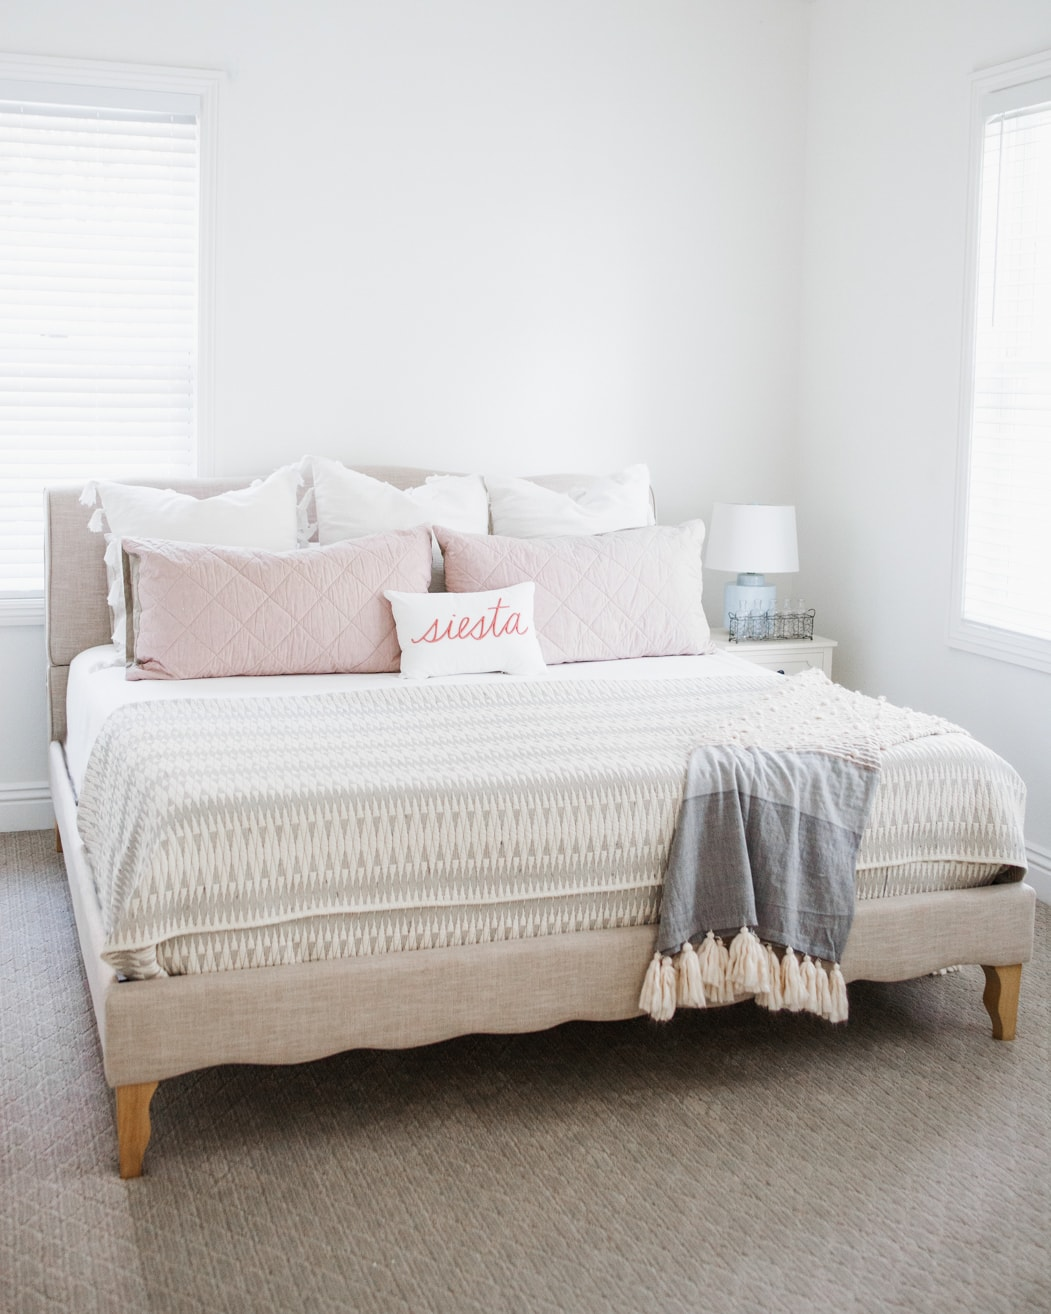 Guest Room Inspiration: Cute Guest Room Refresh Ideas + A Friends And Family Sale